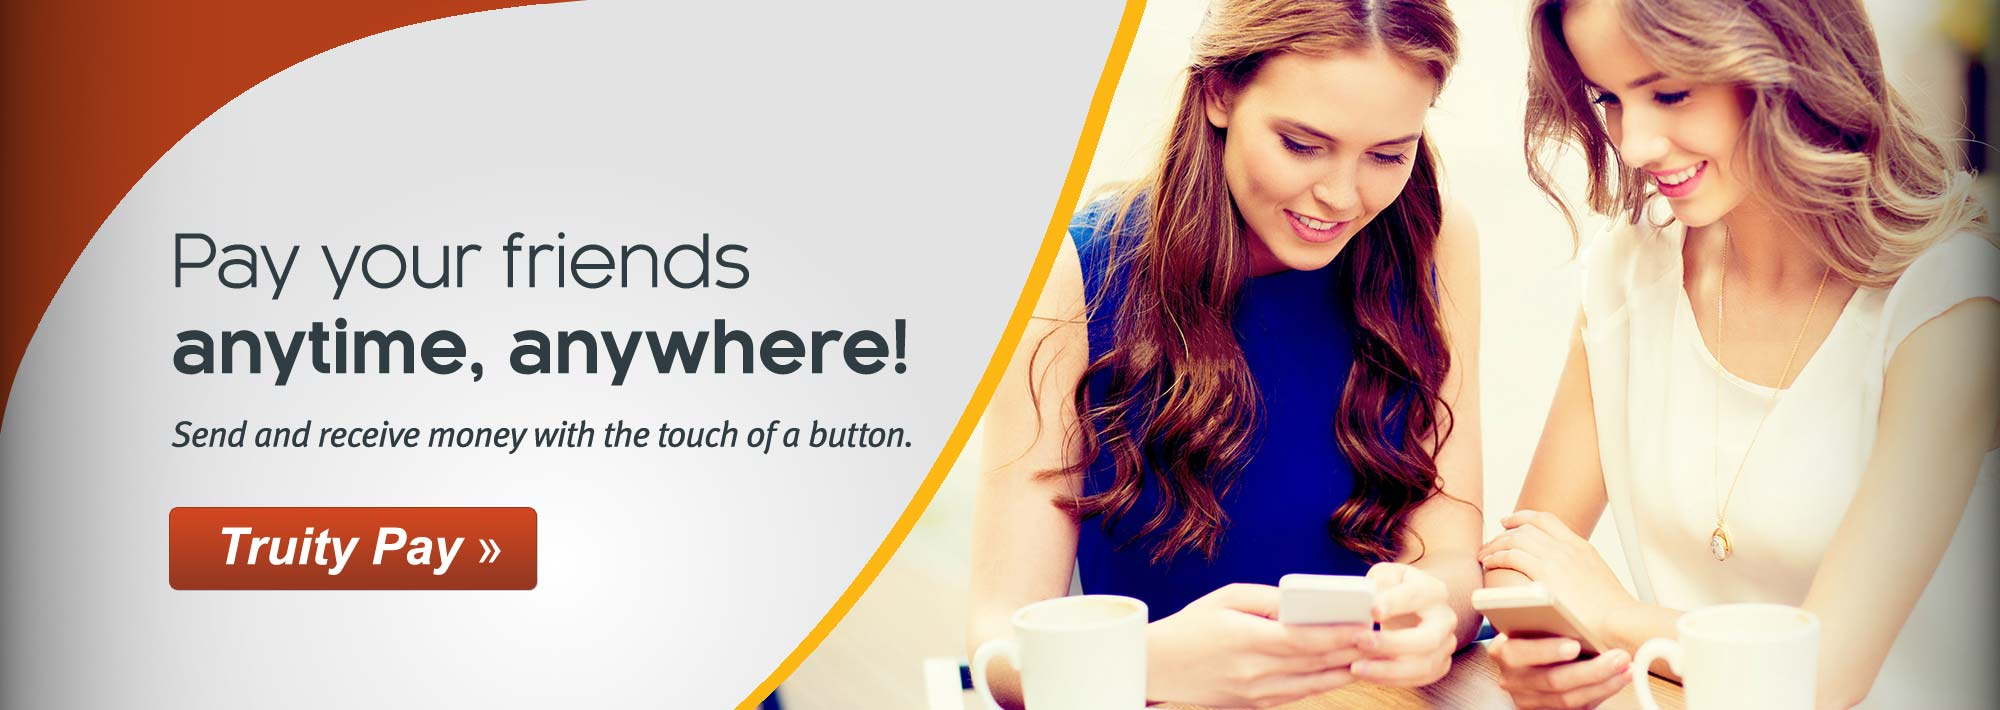 Pay your friends, anytime, anywhere! Send and receive money with the touch of a button.